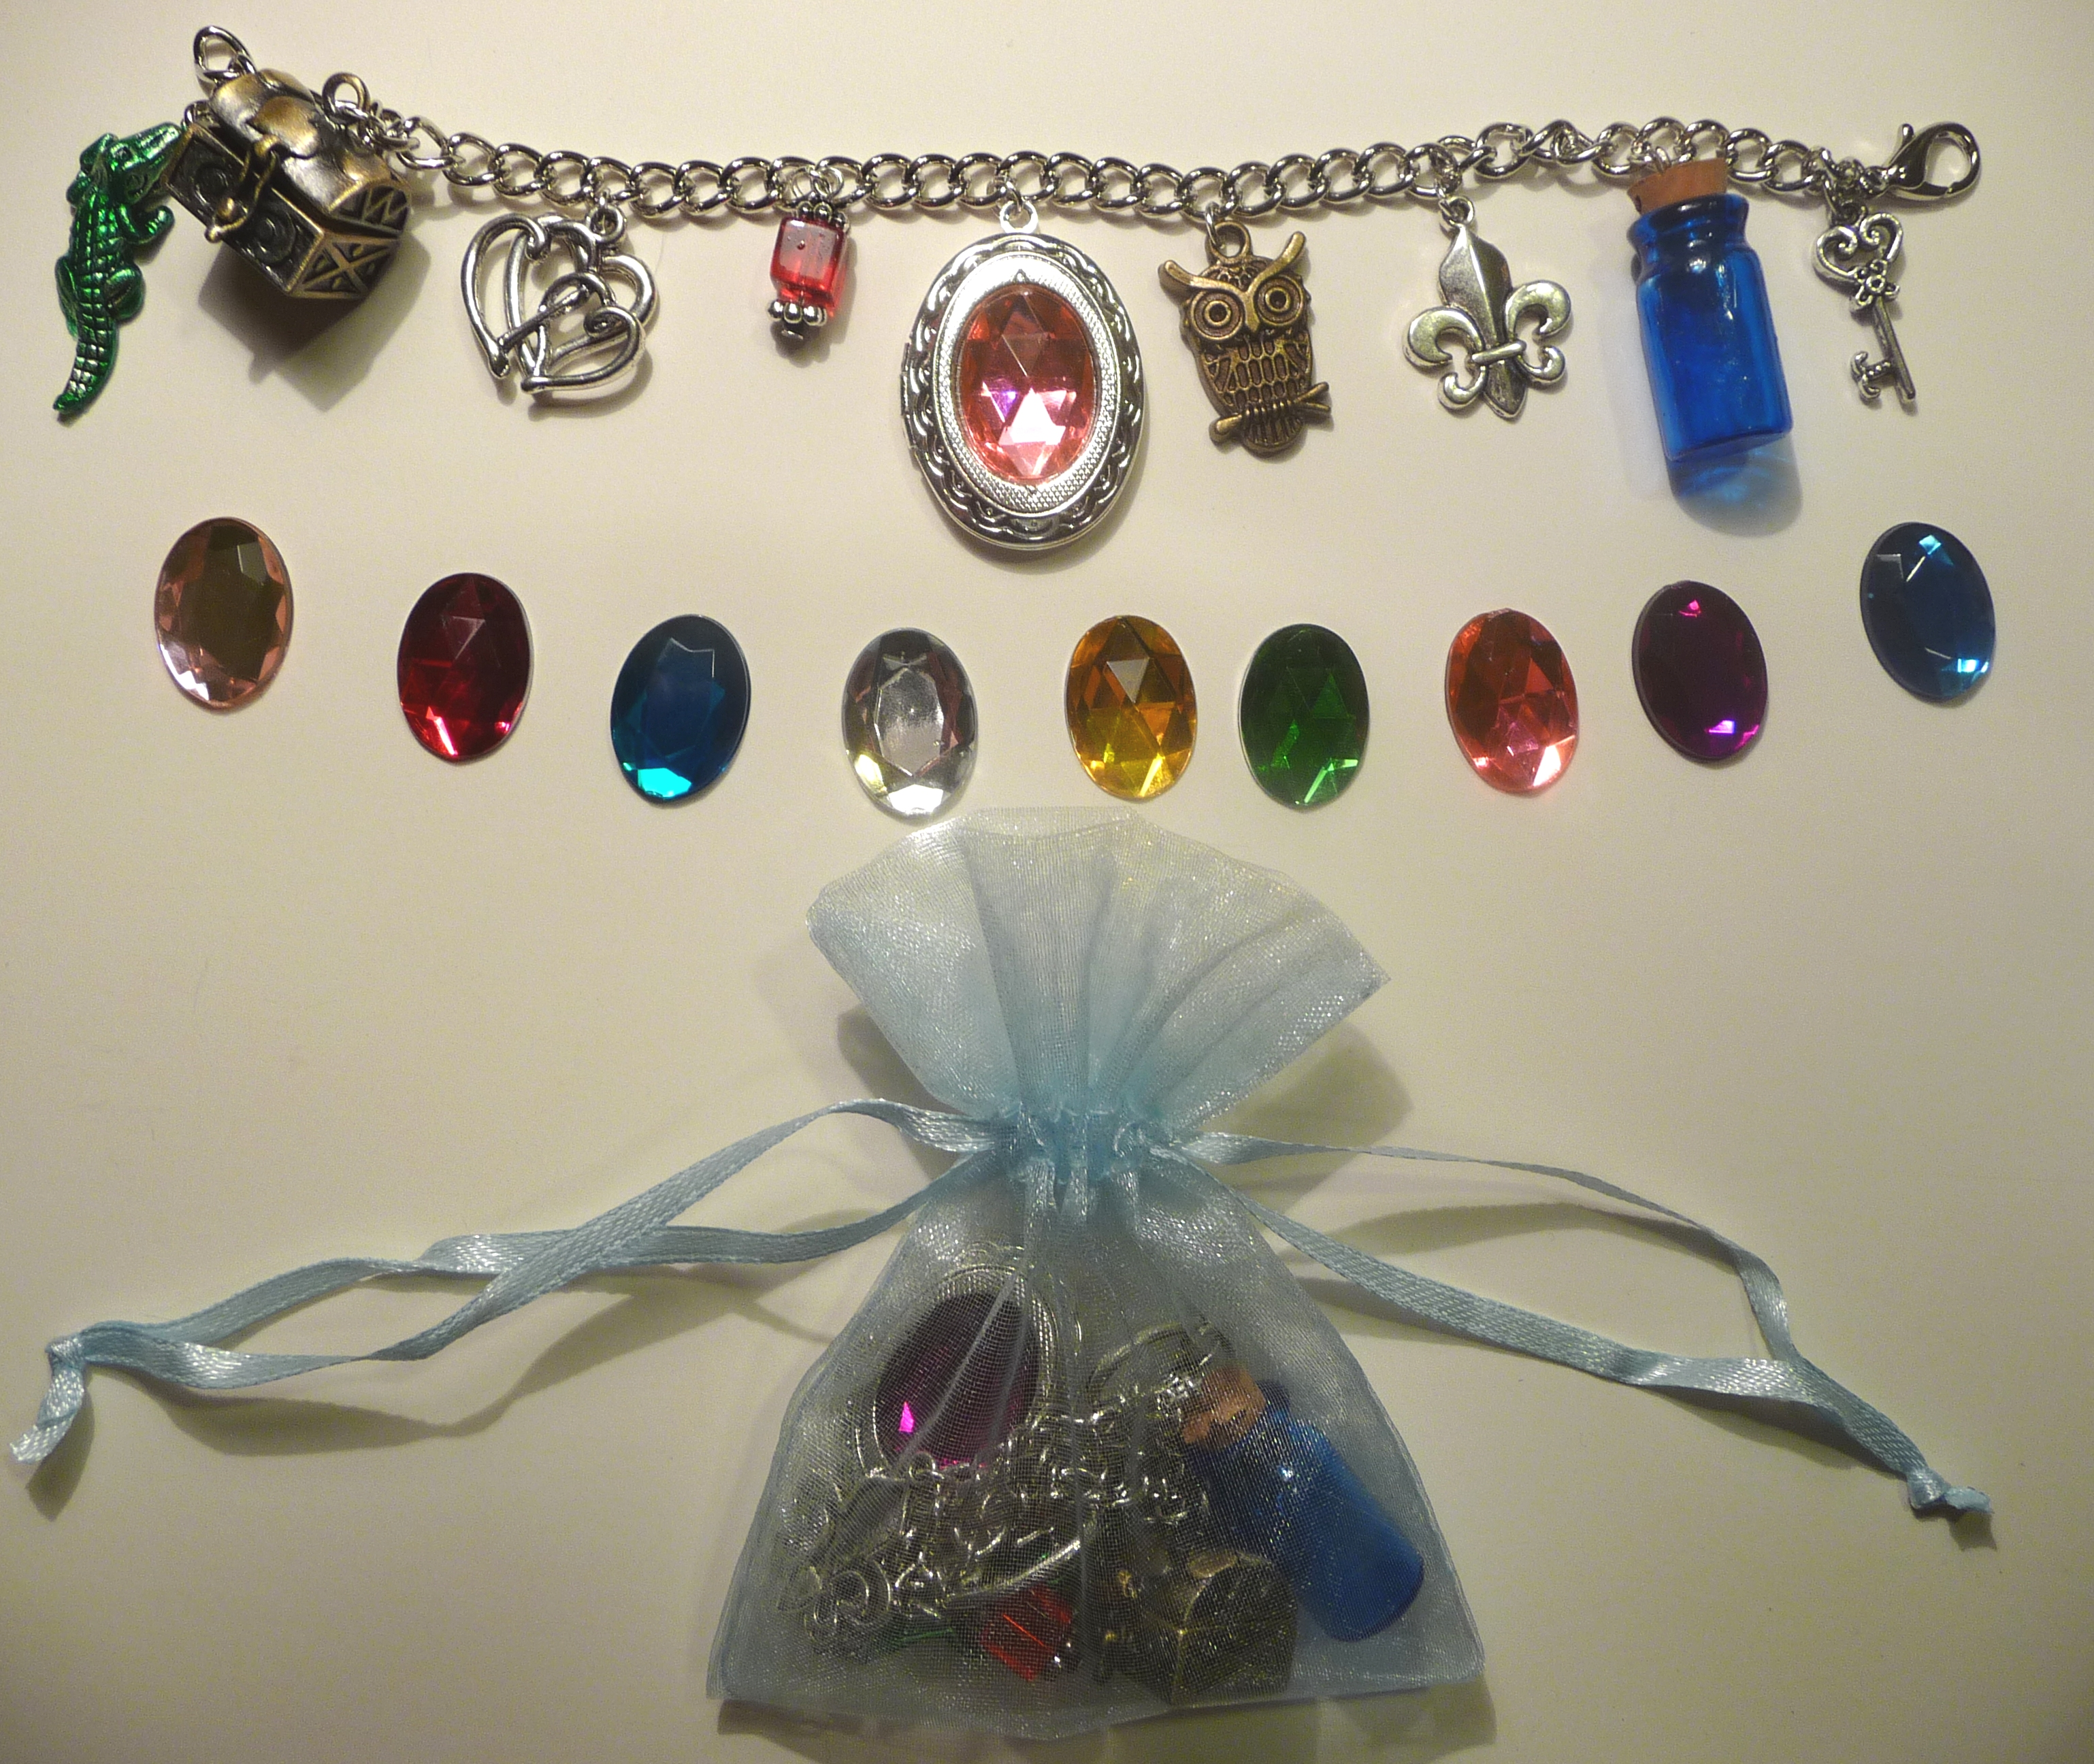 Email me for your very own Charm Bracelet from CIRCLE OF SECRETS! kglittle at msn.com